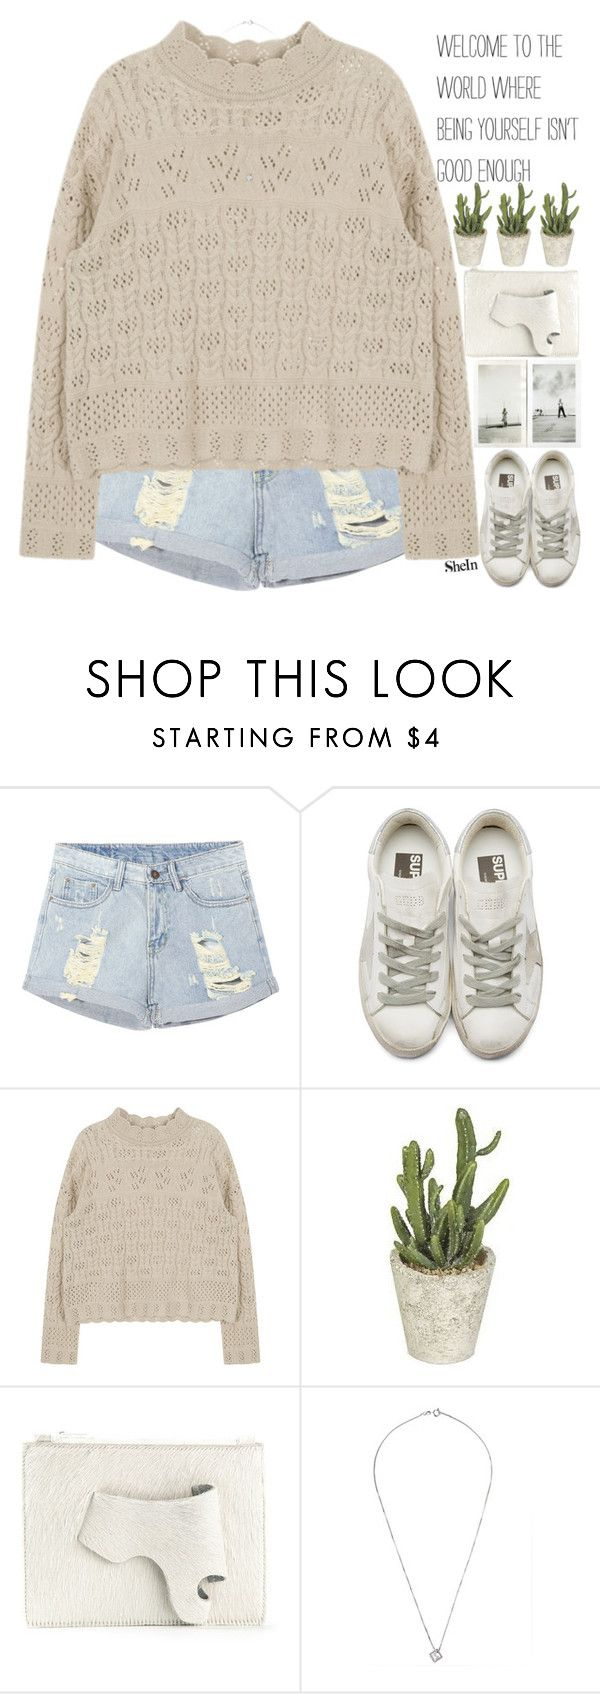 """make sure you take time to love yourself"" by alienbabs ❤ liked on Polyvore featuring Mikey, Golden Goose, New Ultra Group, clean, organized and shein"